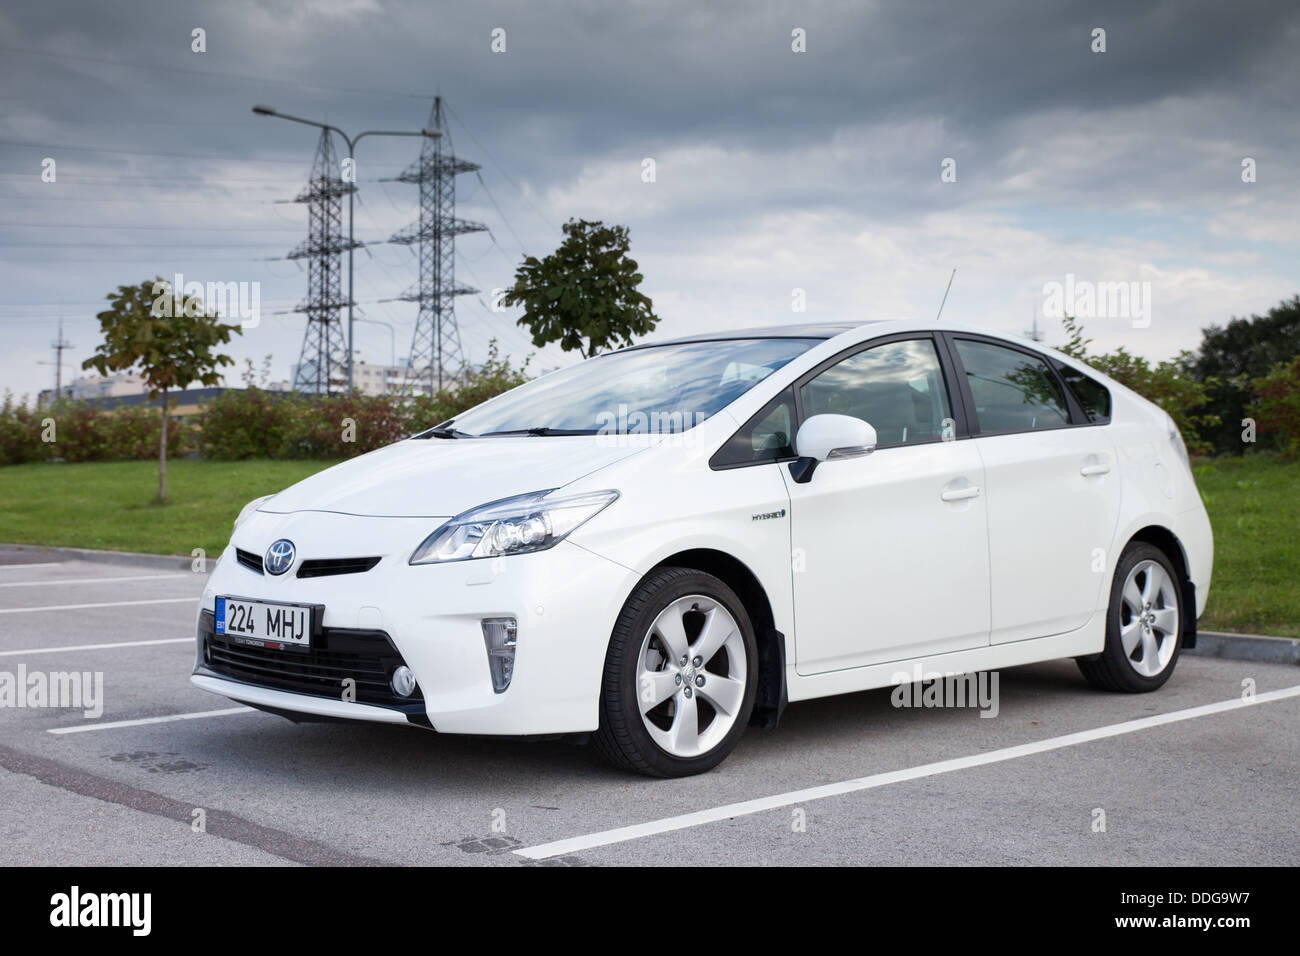 Toyota Prius Hybrid Car - model year 2012. Toyota is one of the leading manufacturers of hybrid technology cars - Stock Image